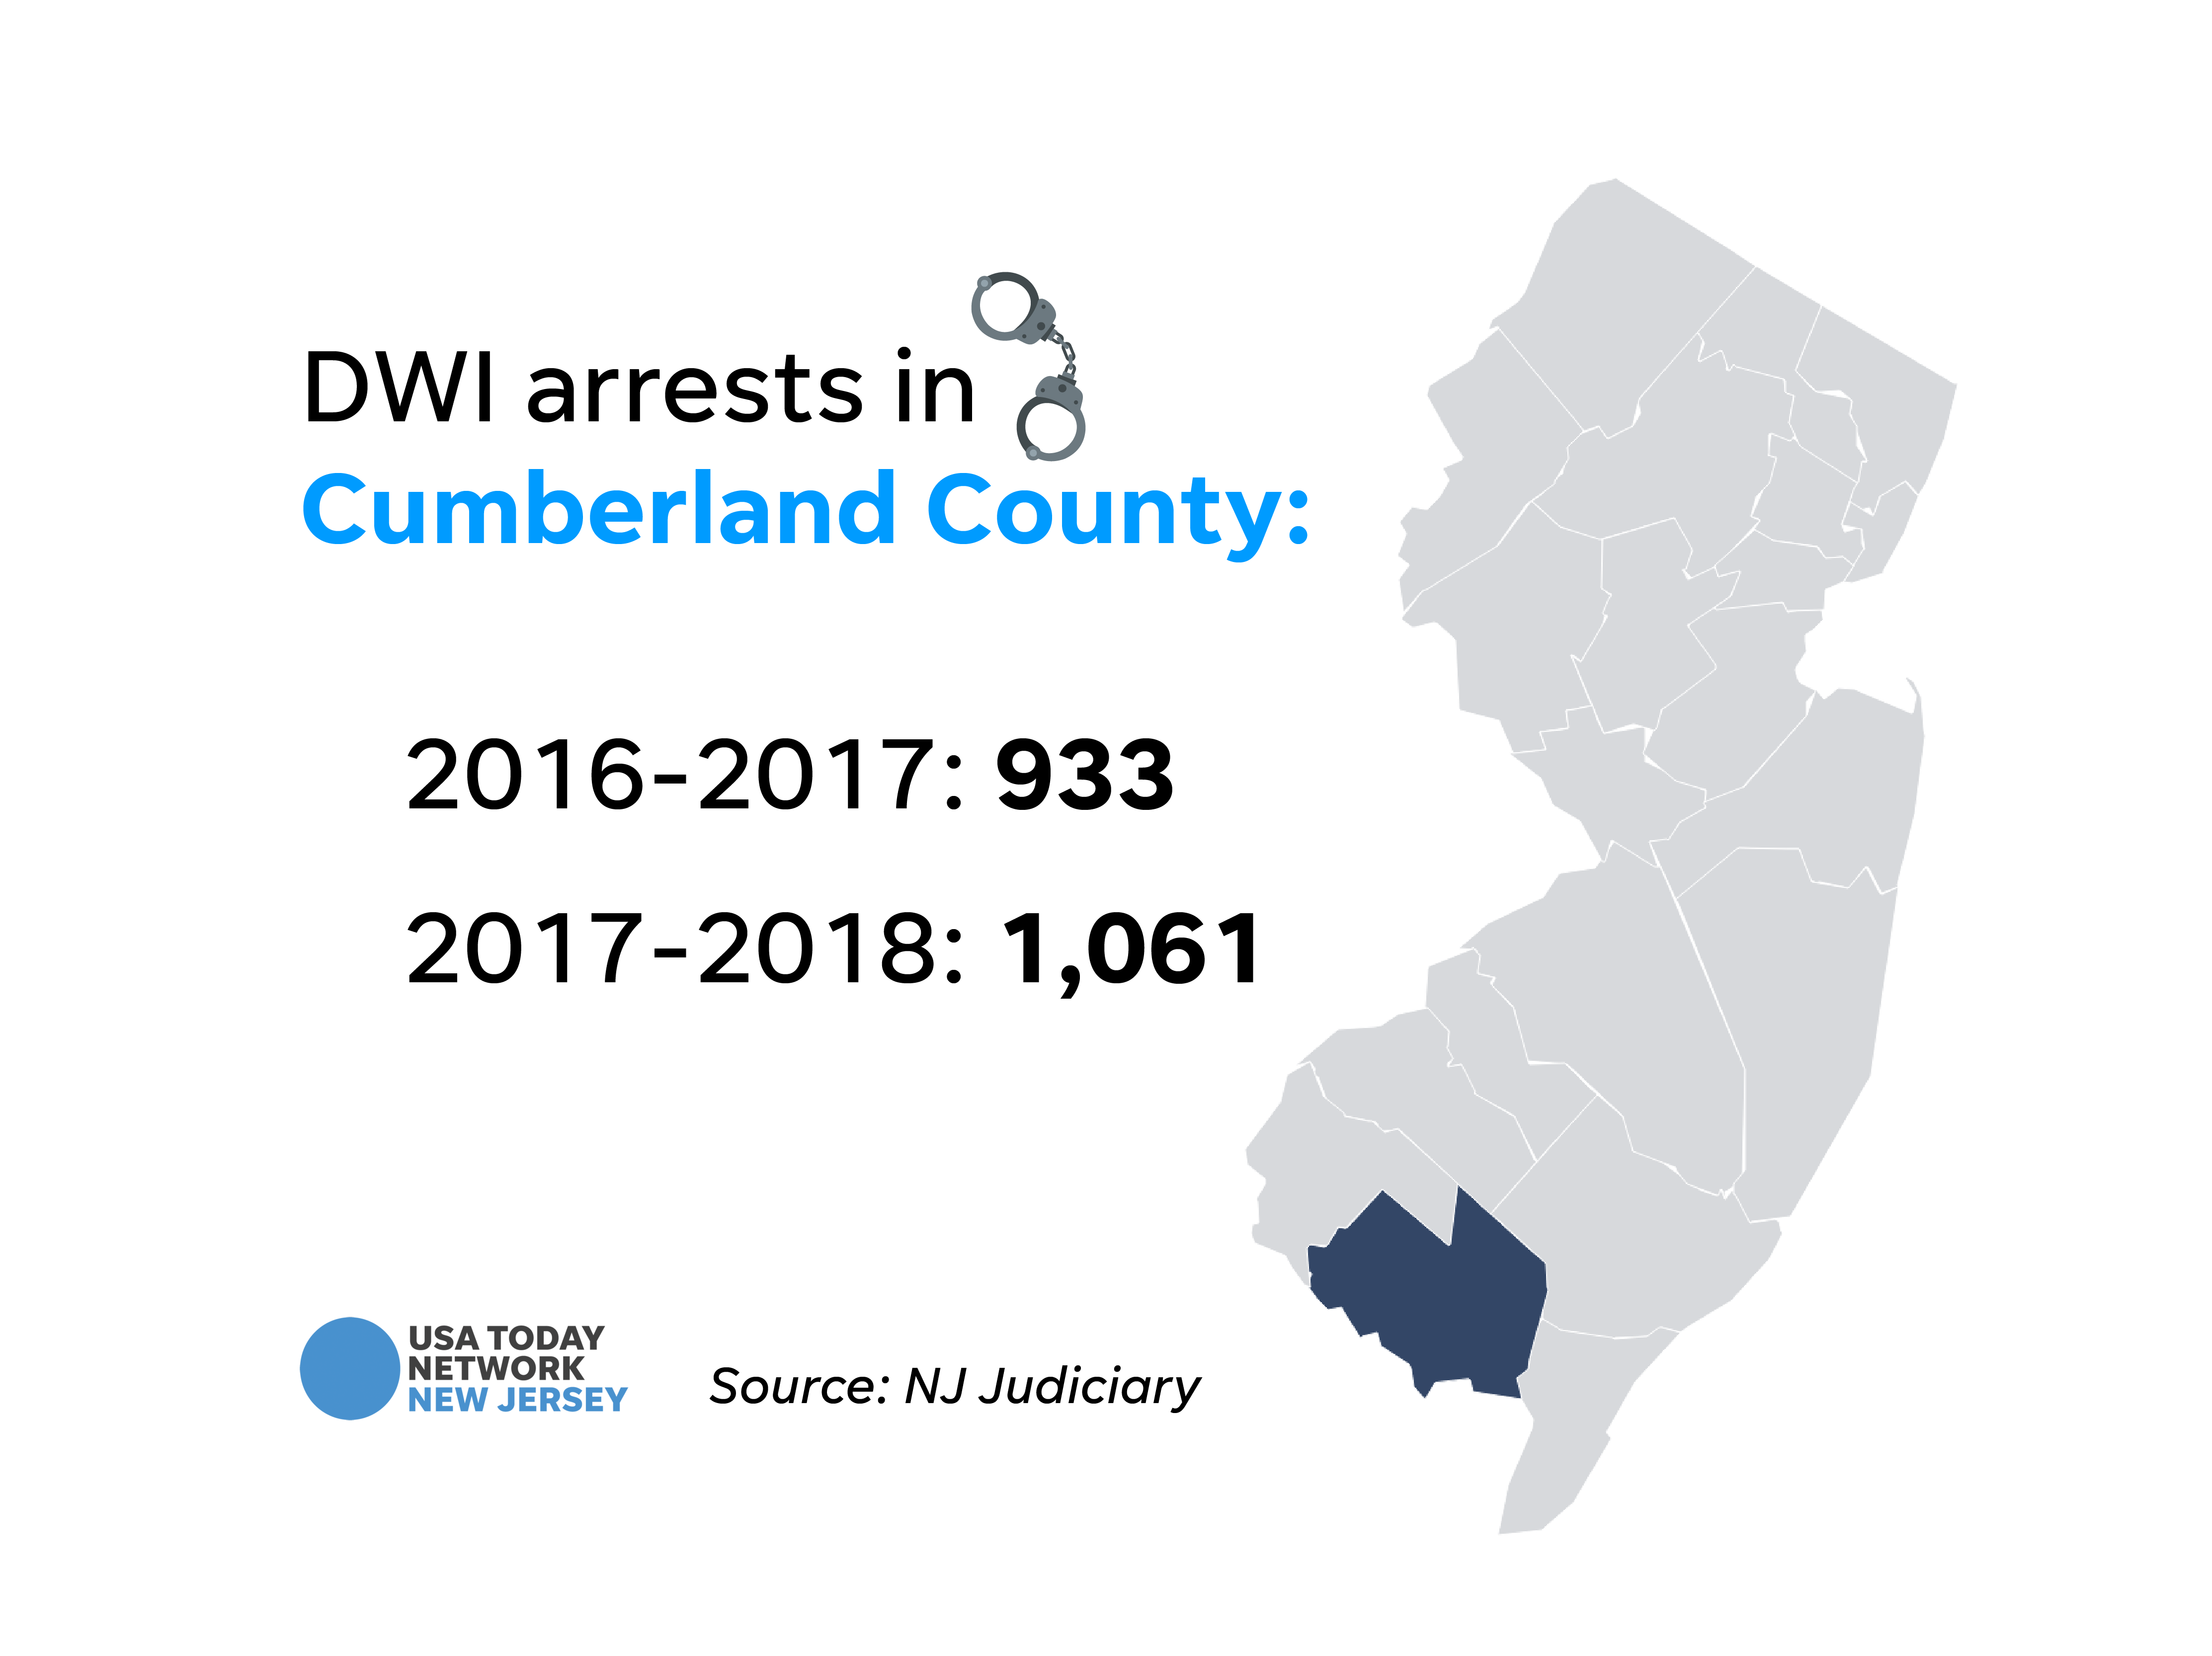 DWI arrests in Cumberland County.